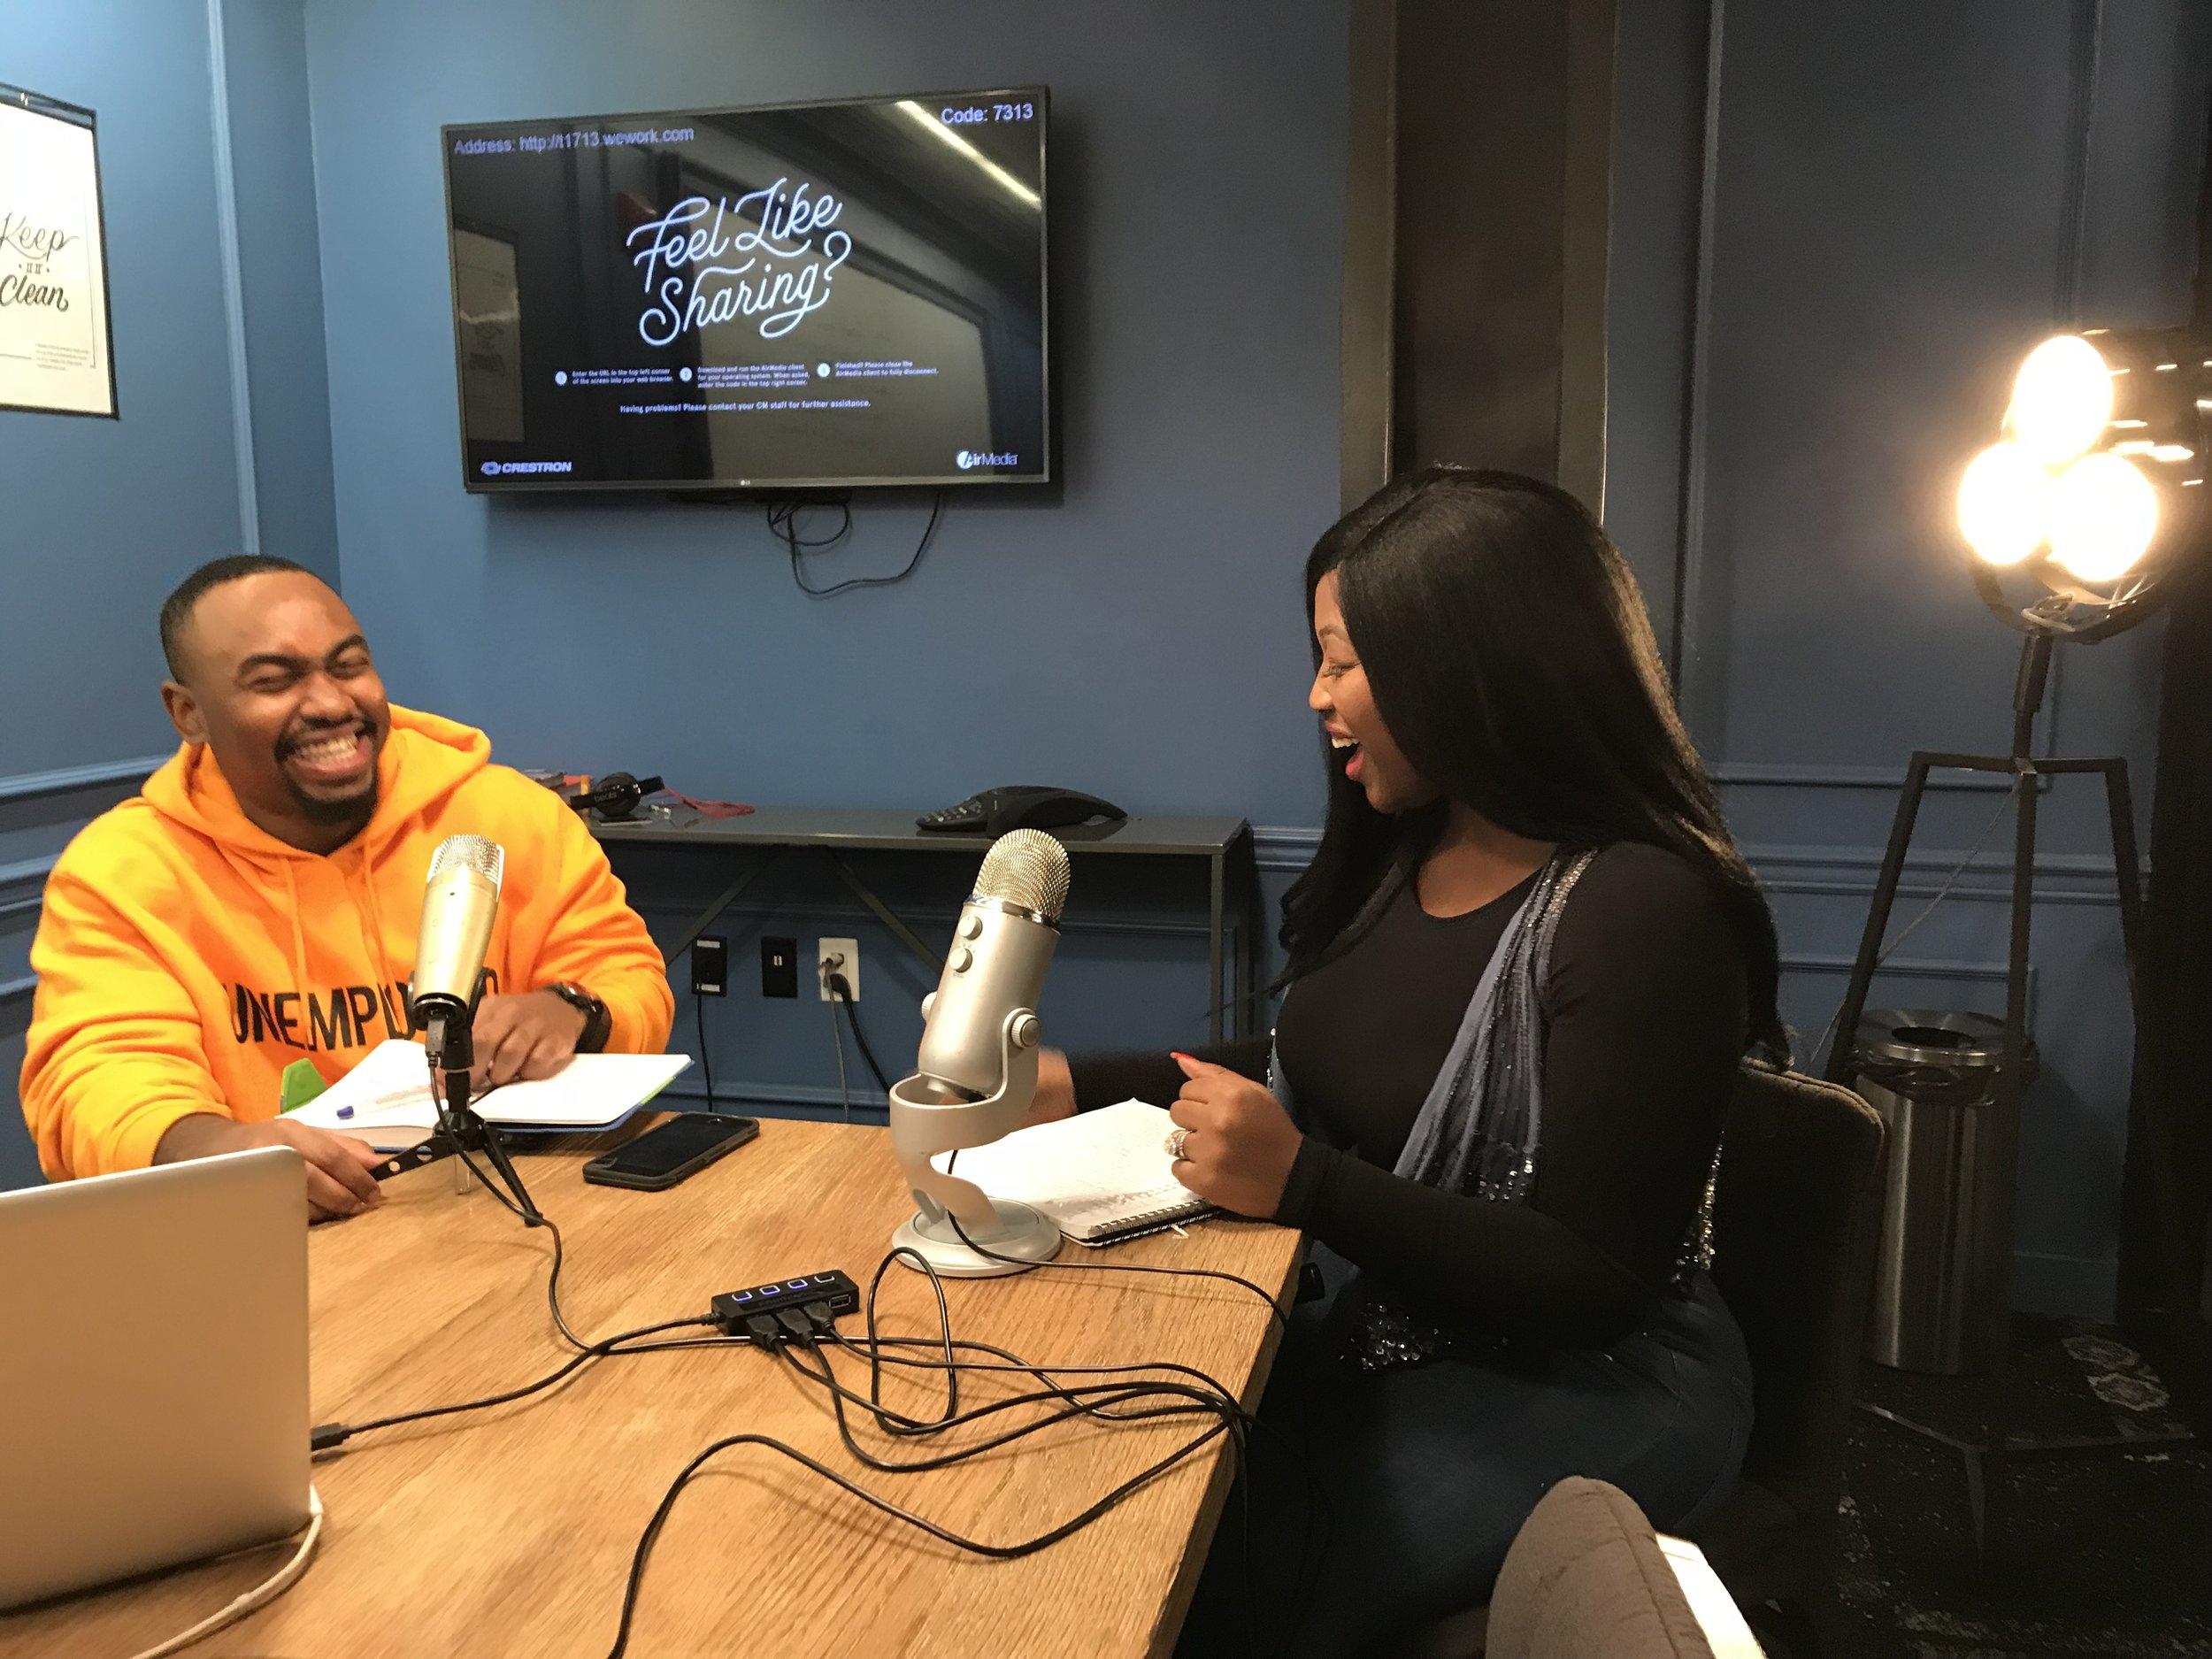 Netta Jenkins - On this episode I am joined by Netta Jenkins, Head of Diversity & Inclusion at IAC Applications. She dishes on key statistics, perceptions and the corporate environment as it relates to the Black Millennial.